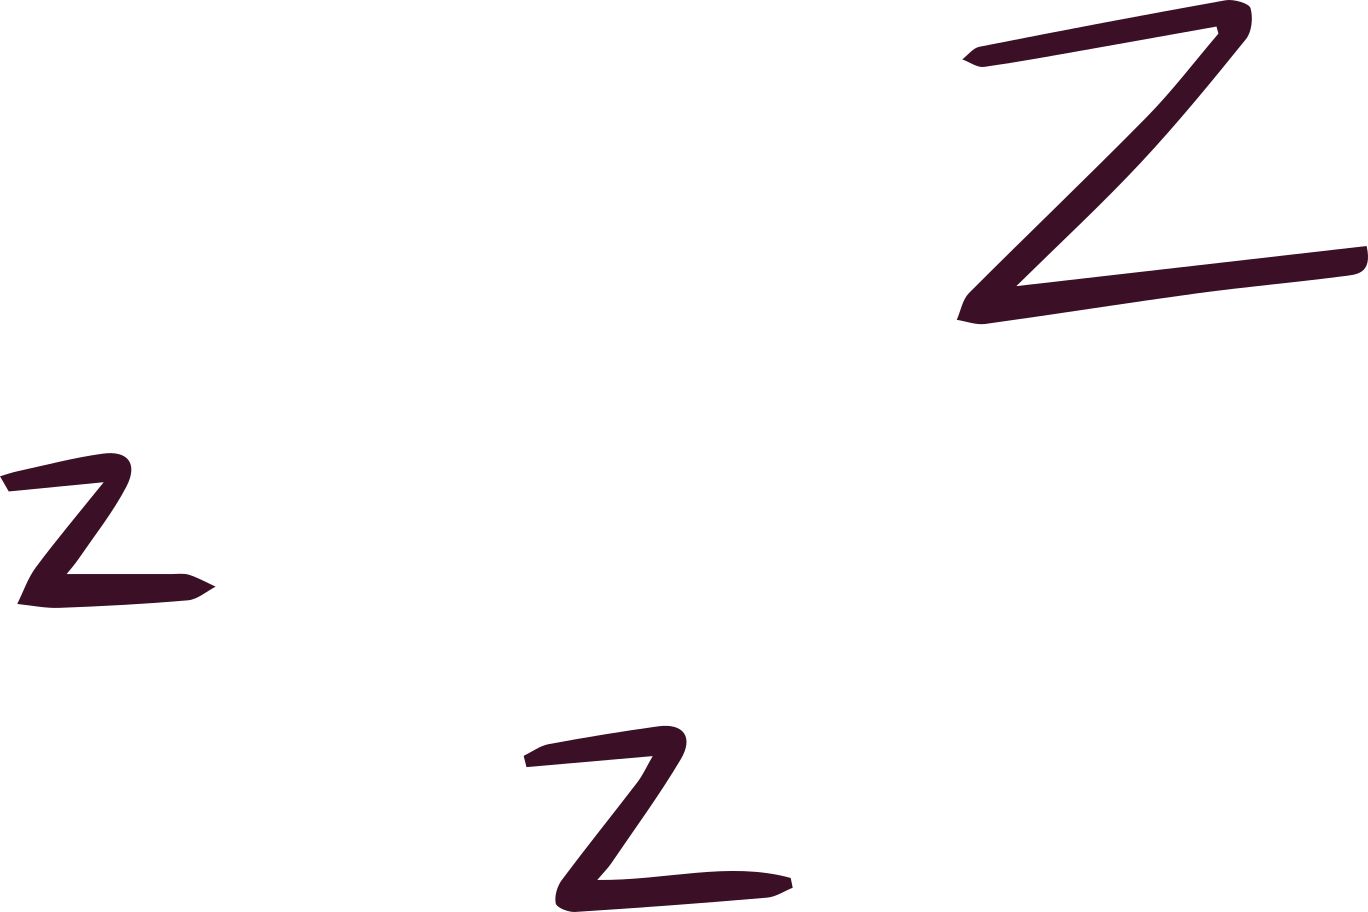 style zzz images in PNG and SVG   Icons8 Illustrations